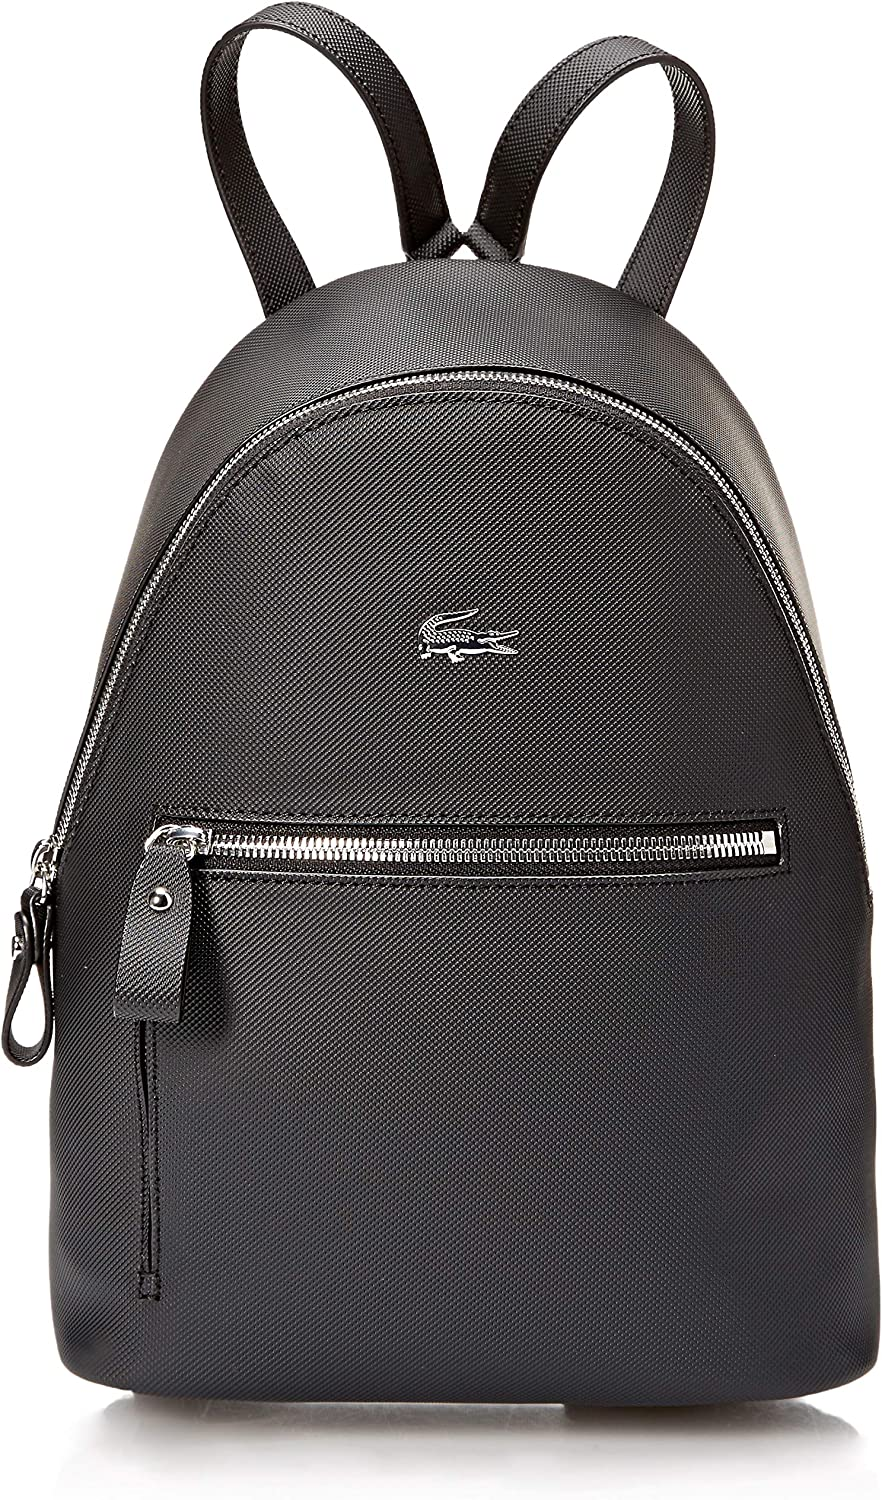 Lacoste Women Daily Classic Backpack